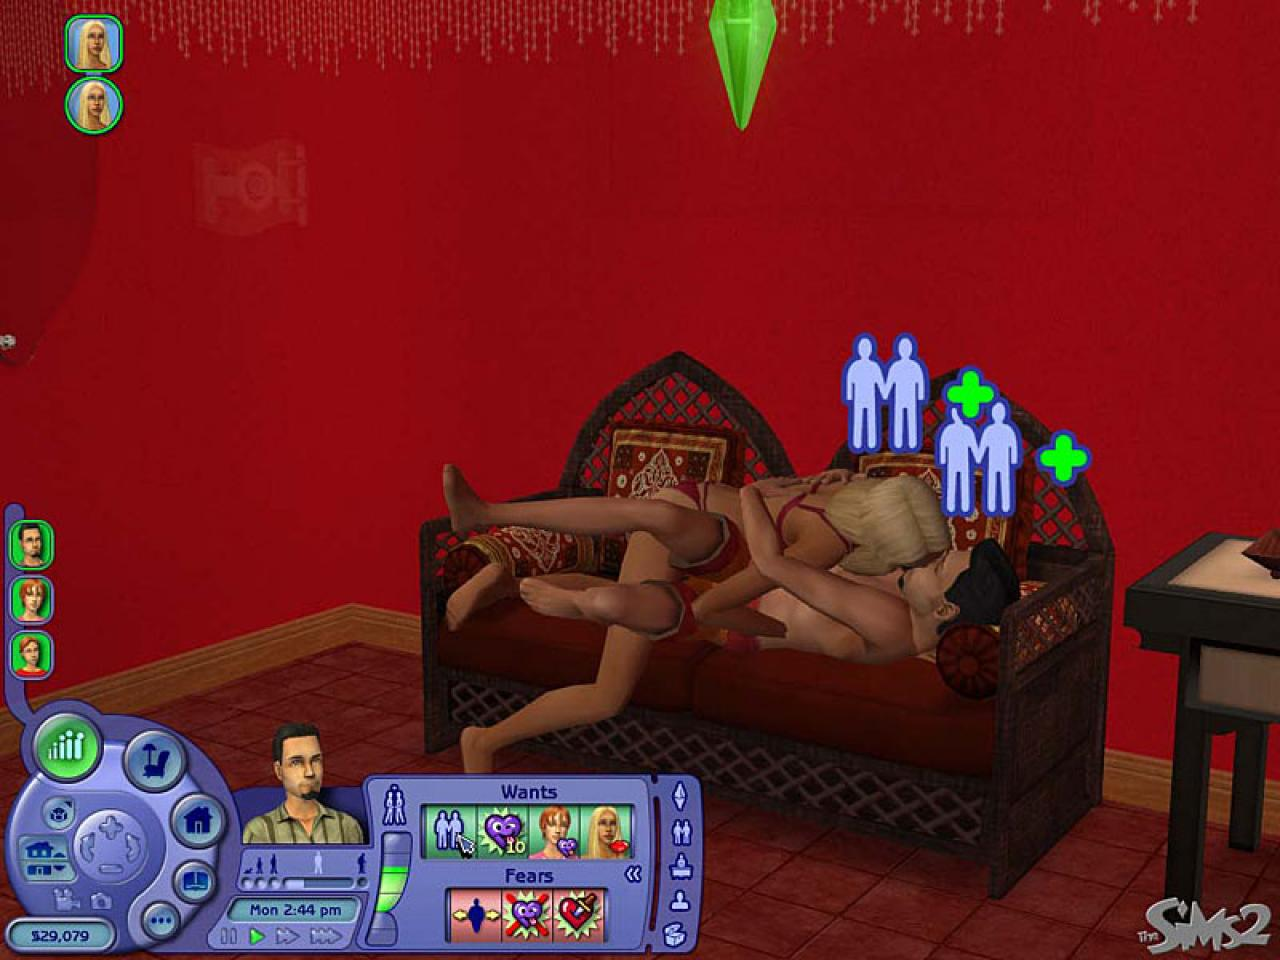 The sims 2 erotic nackt pictures